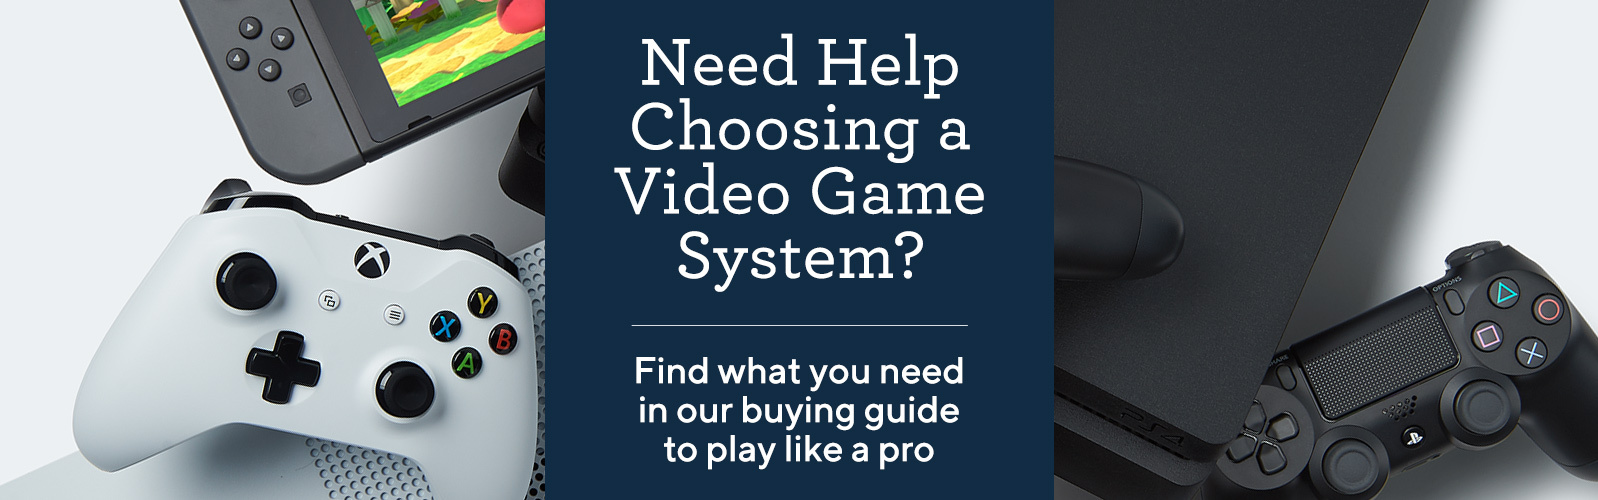 Need Help Choosing a Video Game System  Find what you need in our buying  guide ... 9ad49805e1